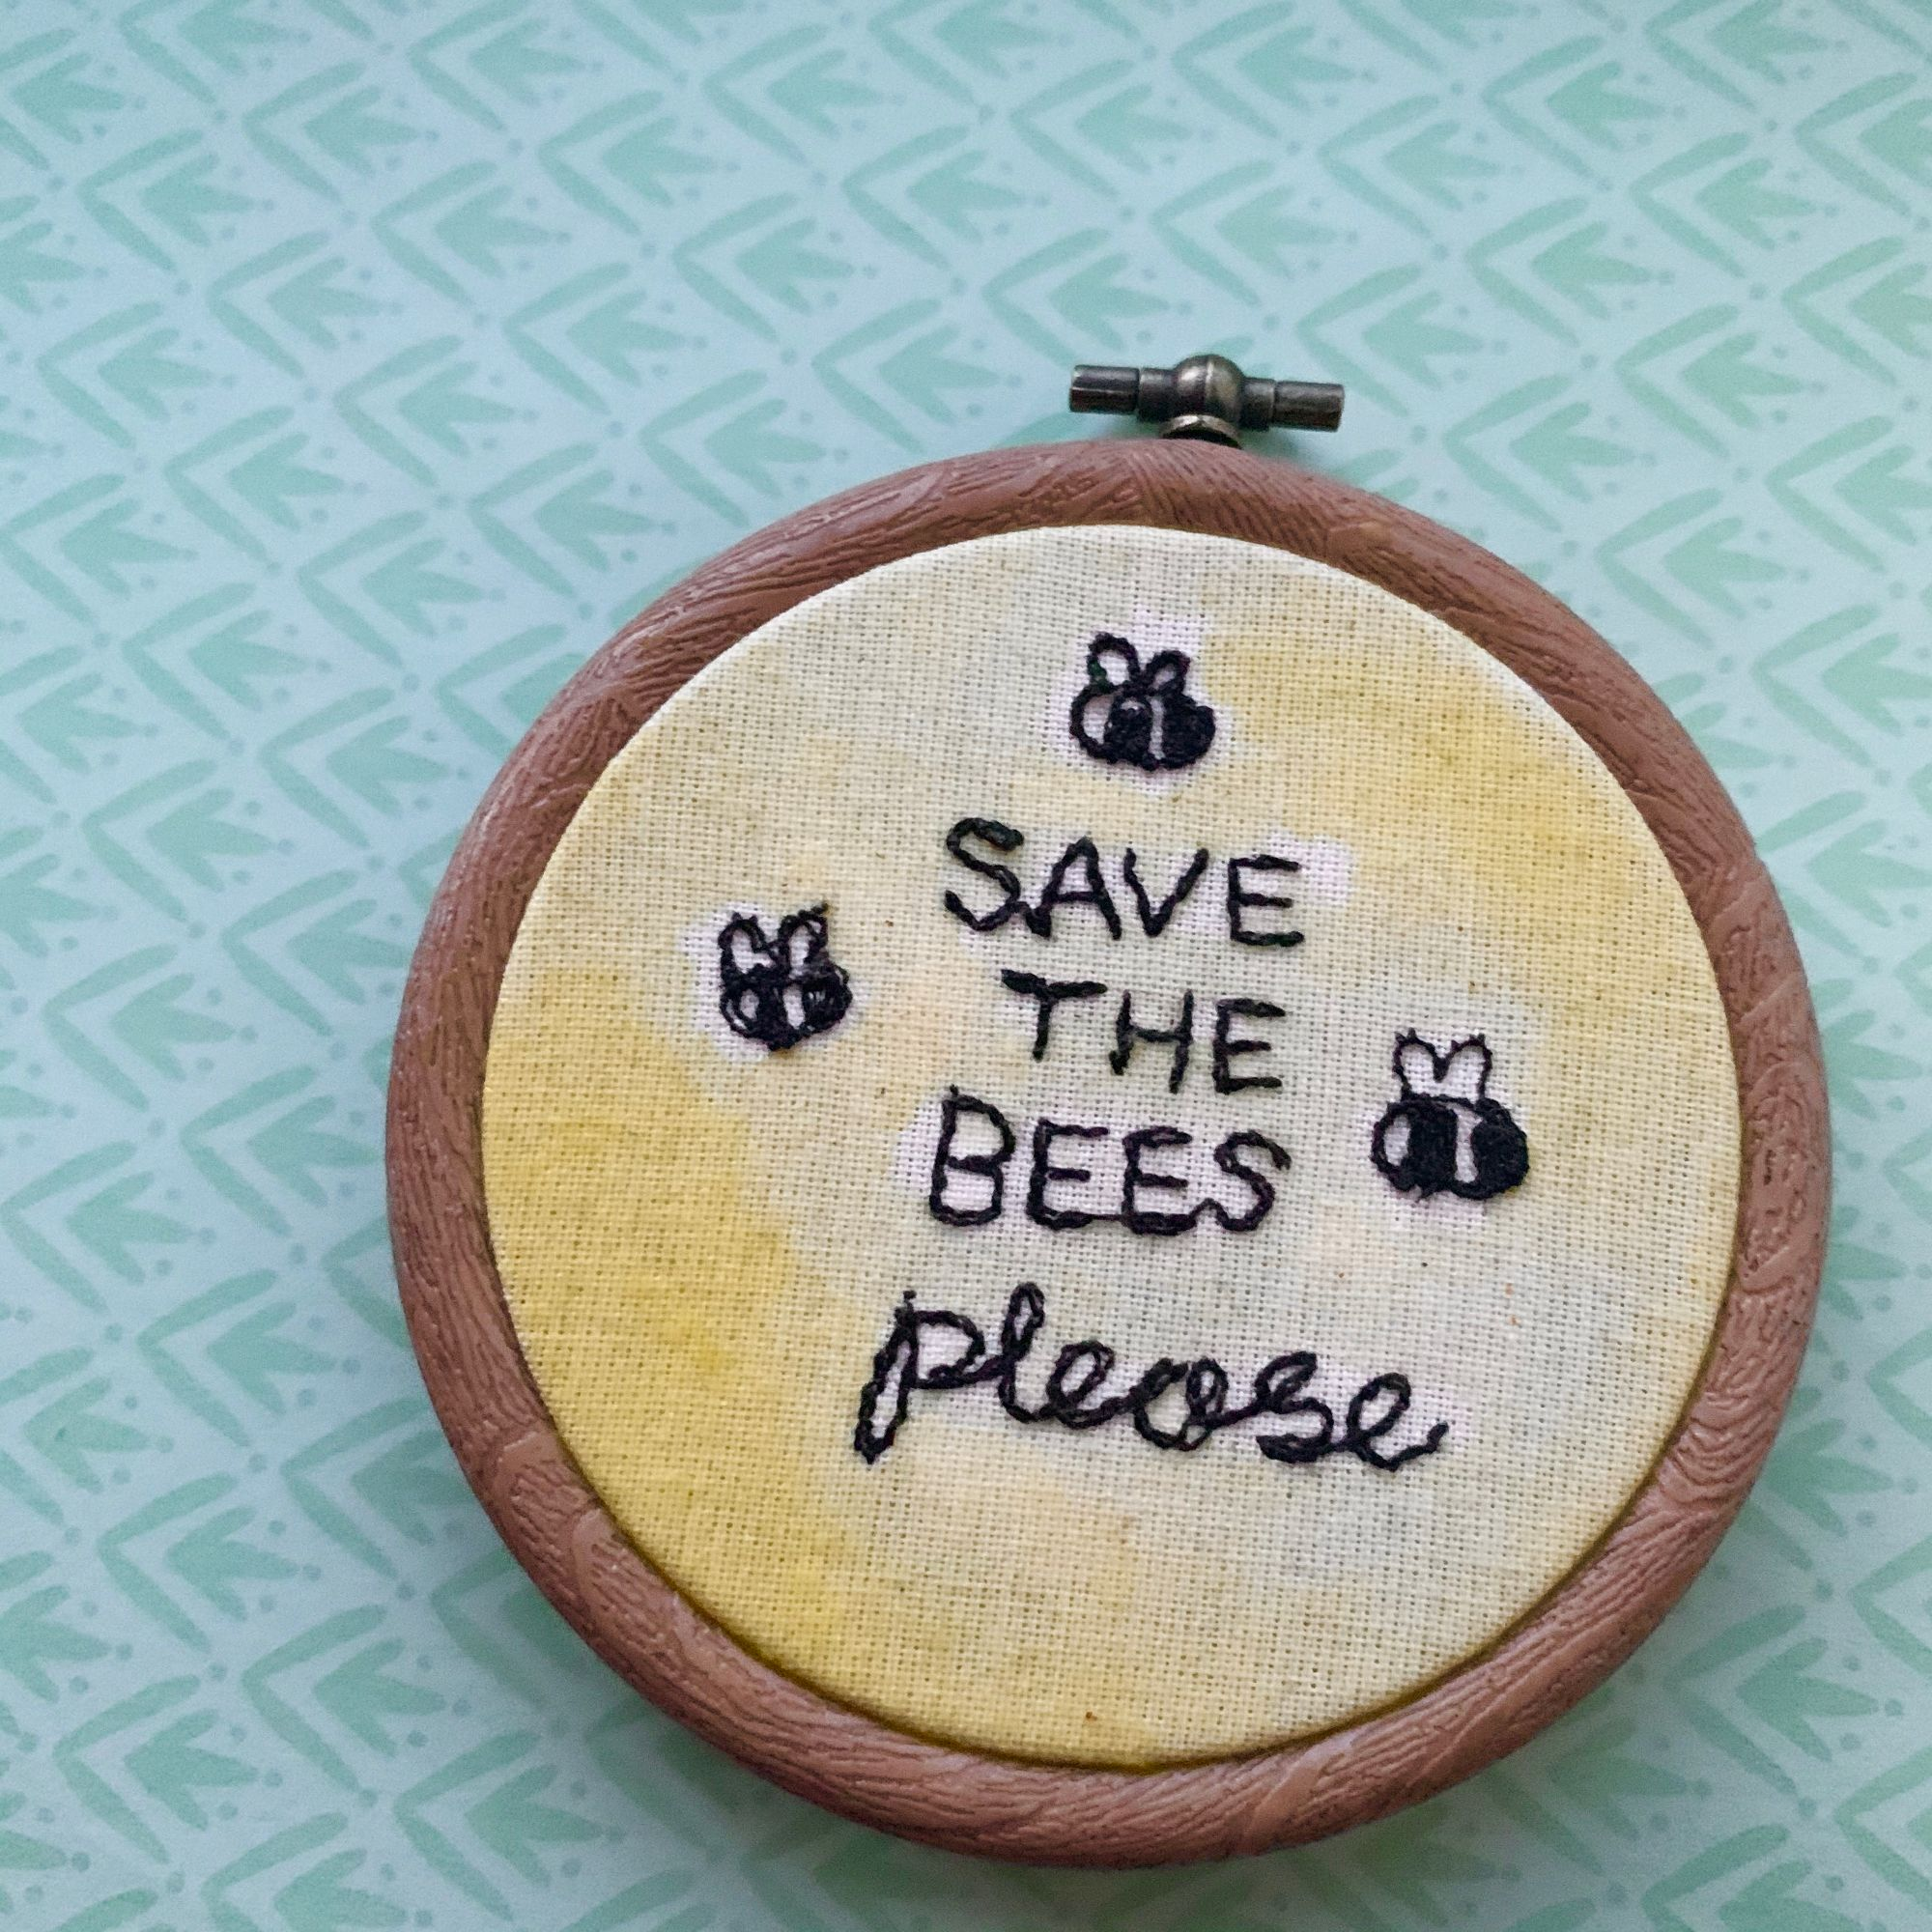 A machine stitched piece reading 'save the bees please', in an embroidery hoop